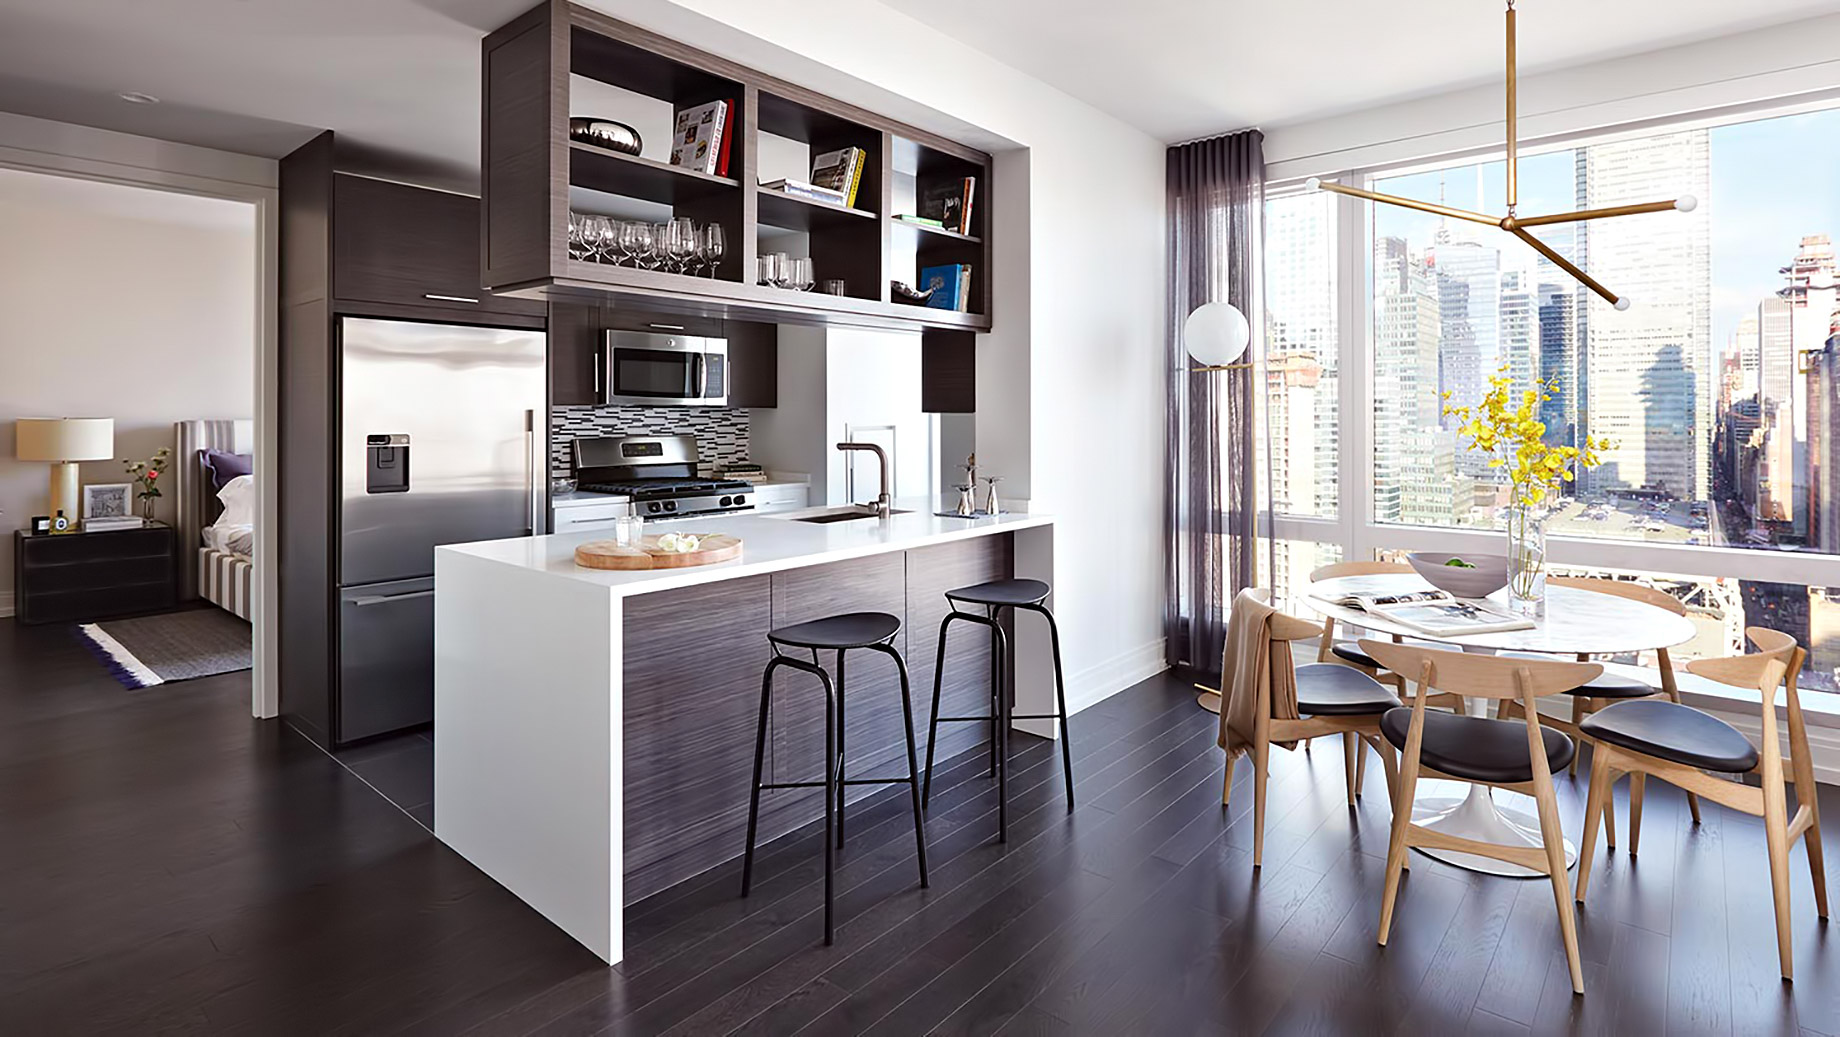 555TEN Midtown West Luxury Condo Apartments - 555 10th Ave, New York, NY, USA